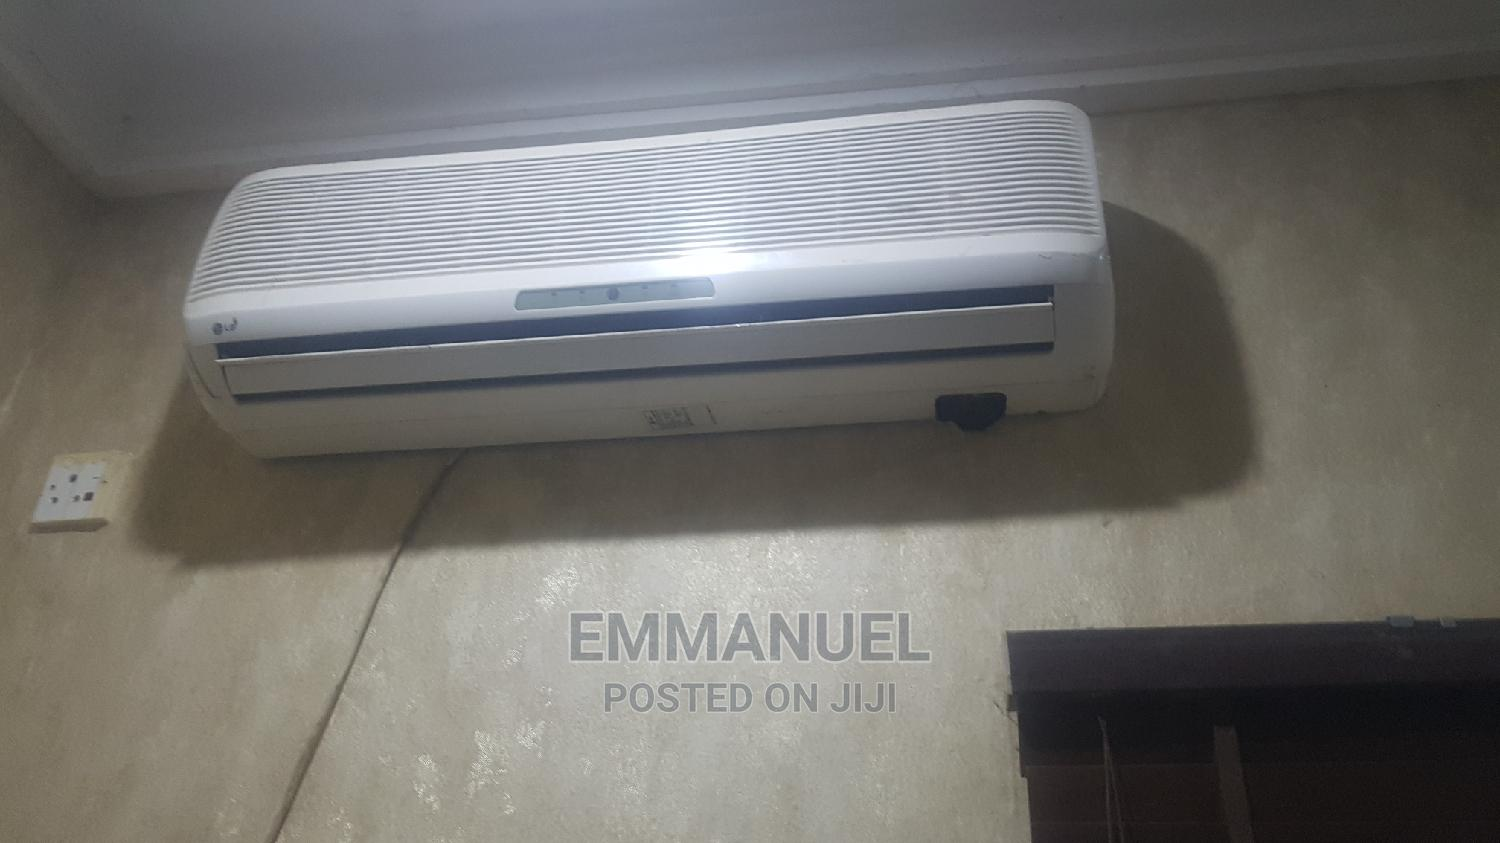 LG 1.5 Hp Air Conditioner | Home Appliances for sale in Apo District, Abuja (FCT) State, Nigeria